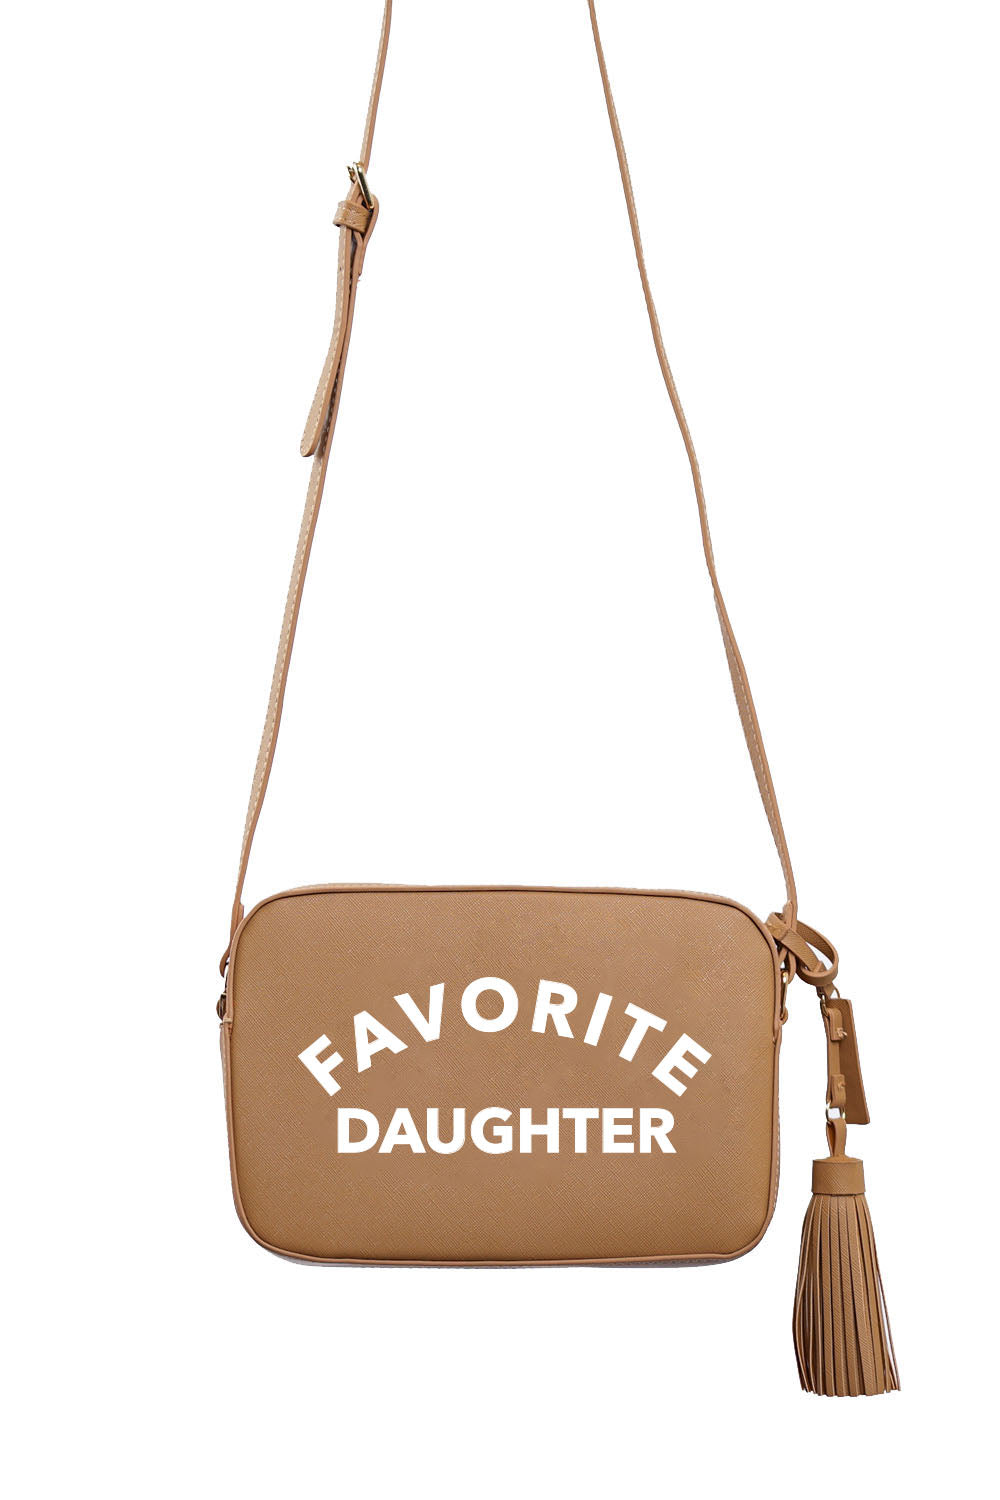 VEGAN CROSSBODY BAG - Favorite Daughter (Tan)